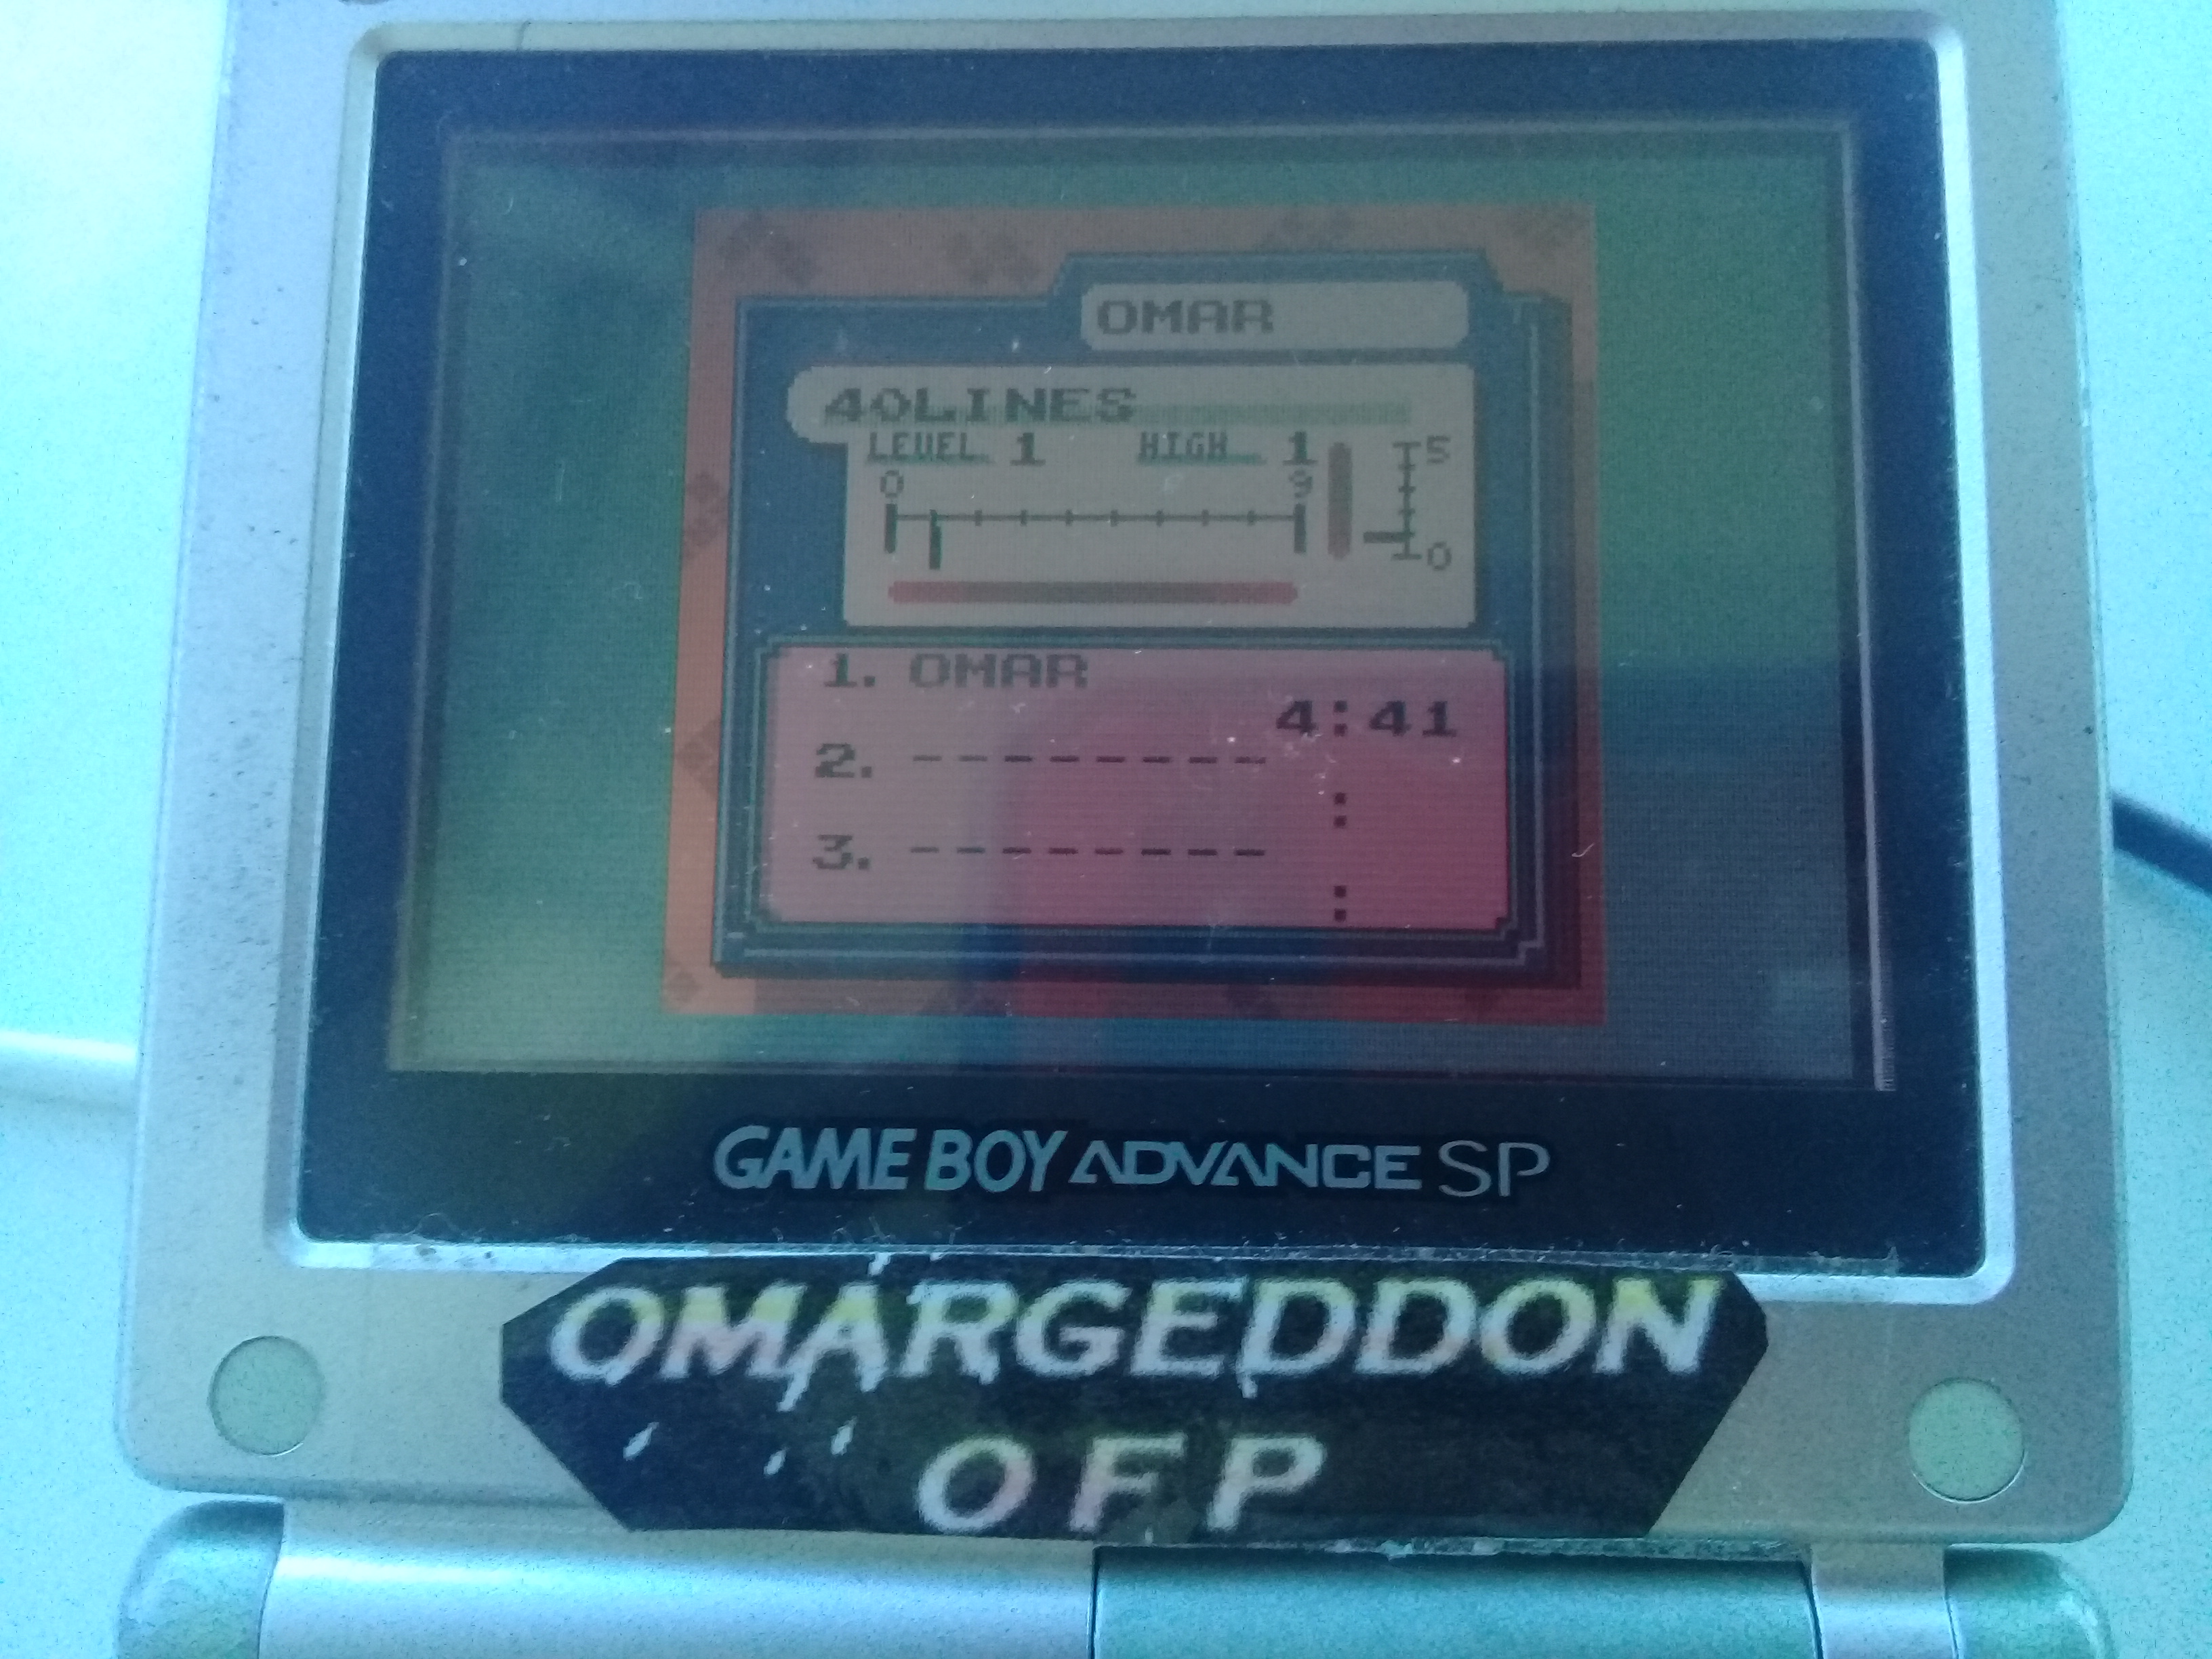 omargeddon: Tetris DX: 40 Lines [Level 1/Height 1] (Game Boy Color) 0:04:41 points on 2019-04-20 16:07:12